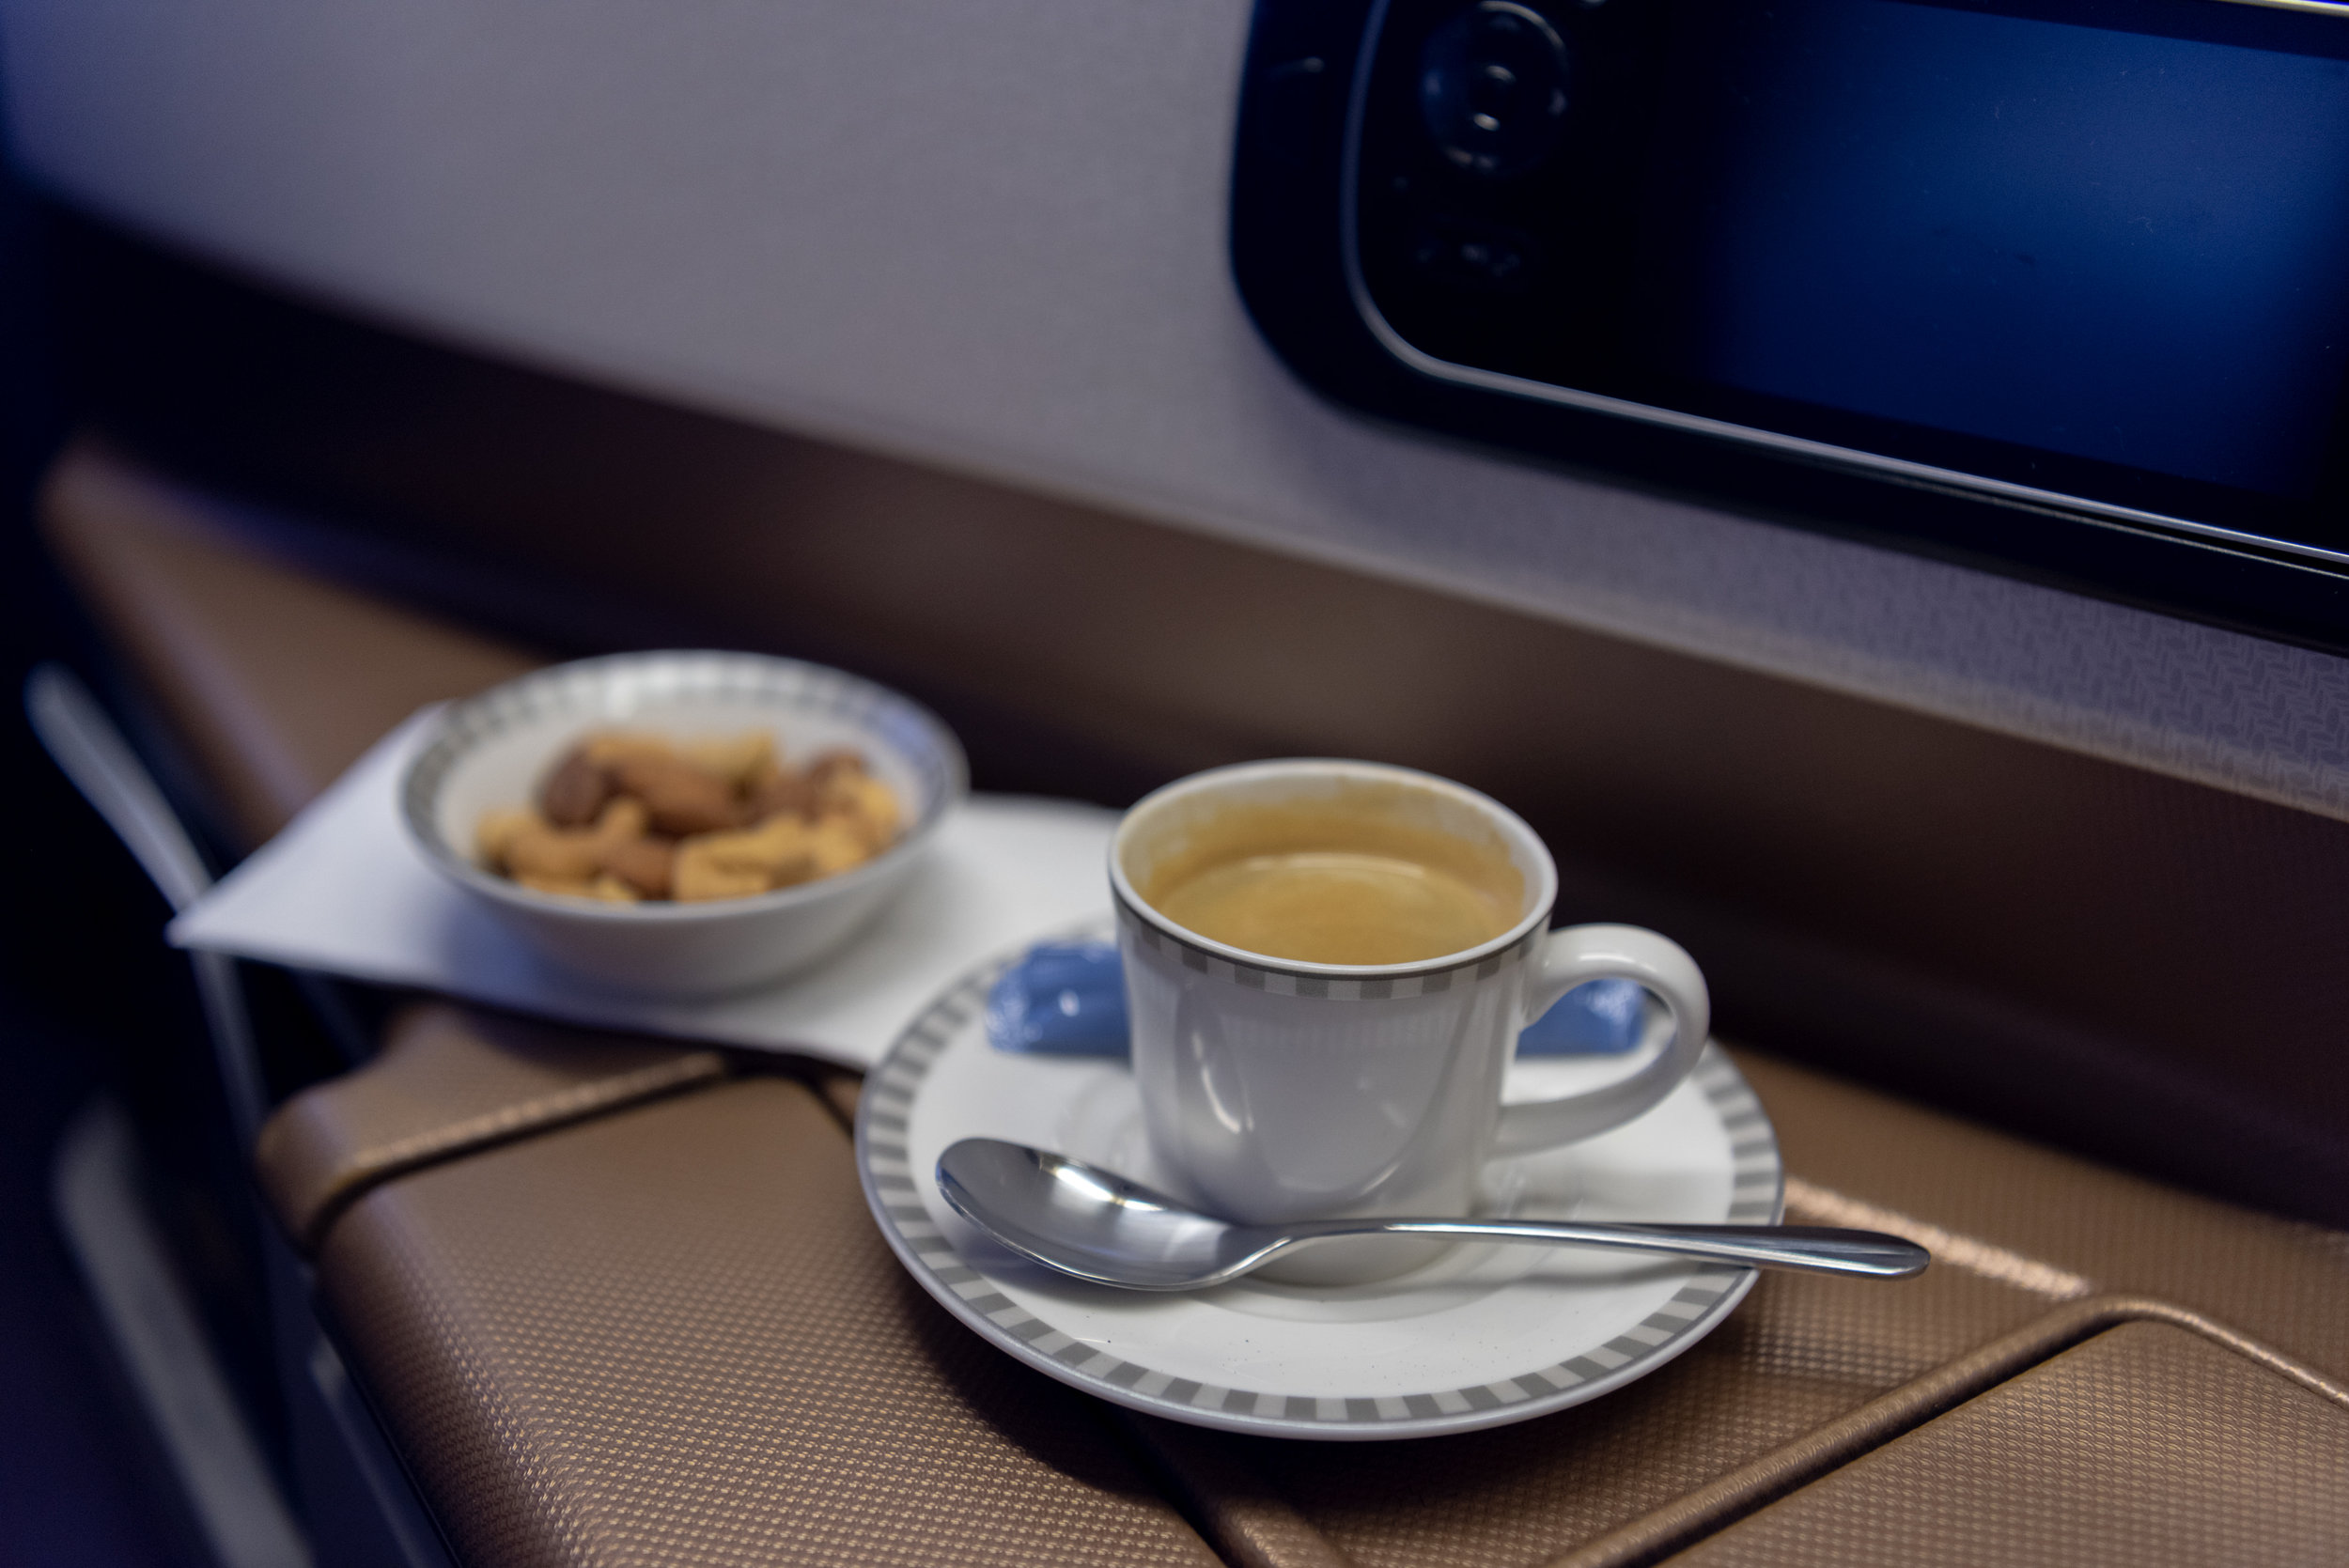 Coffee and Warm Nuts  Singapore Airlines Business Class SQ828 777-300ER - SIN to PVG